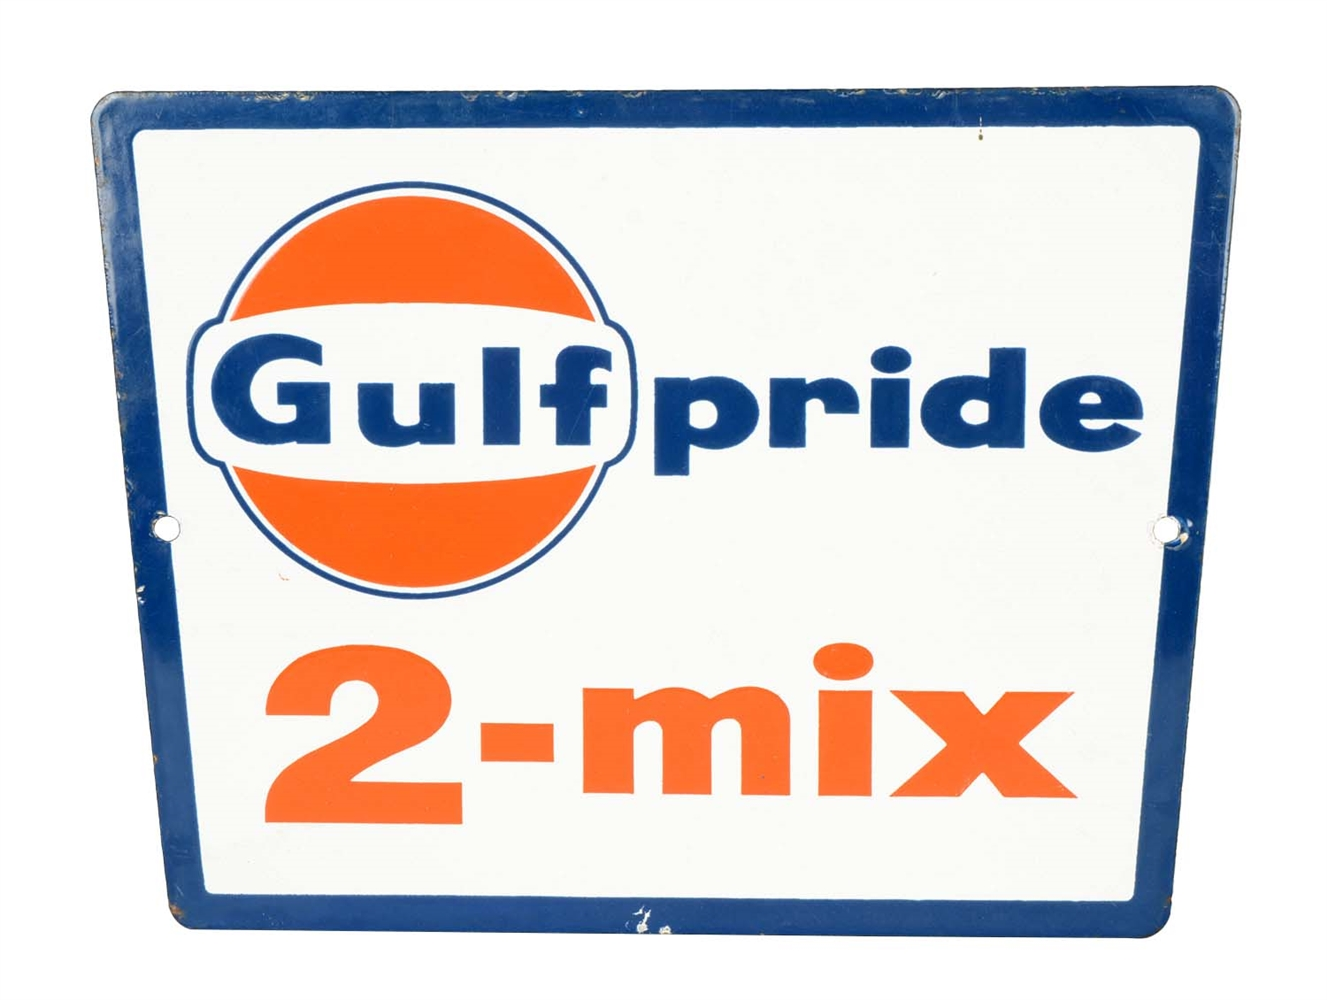 Gulfpride 2-Mix Porcelain Sign.